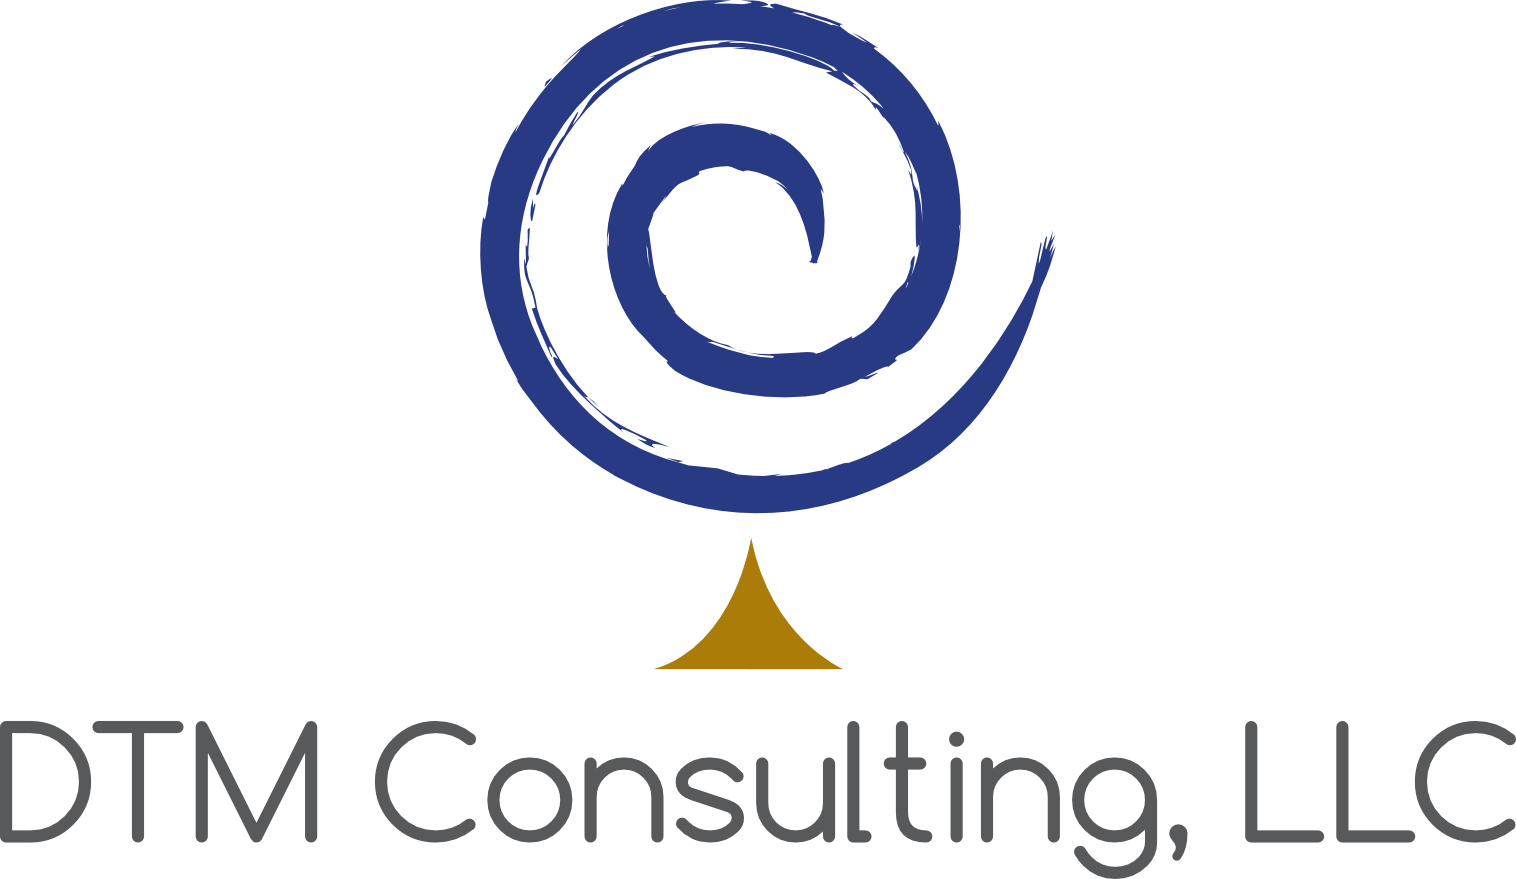 DTM Consulting, LLC